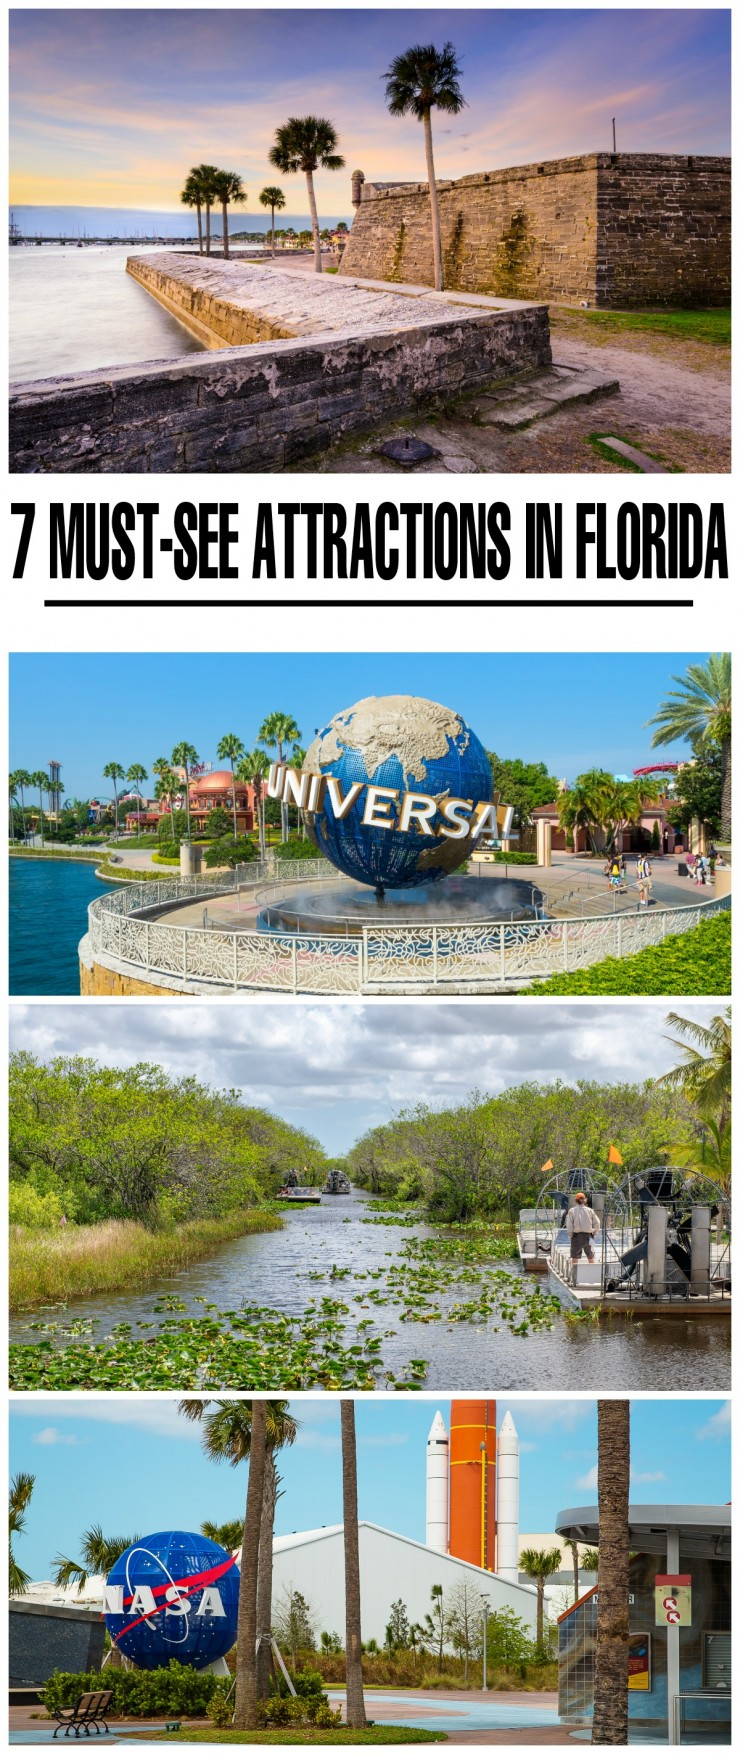 Florida is home to many amusement parks, state parks, caves, beautiful beaches and many other attractions. Florida is an extremely popular vacation destination and it's not hard to see why, check out these 7 must-see attractions in Florida!